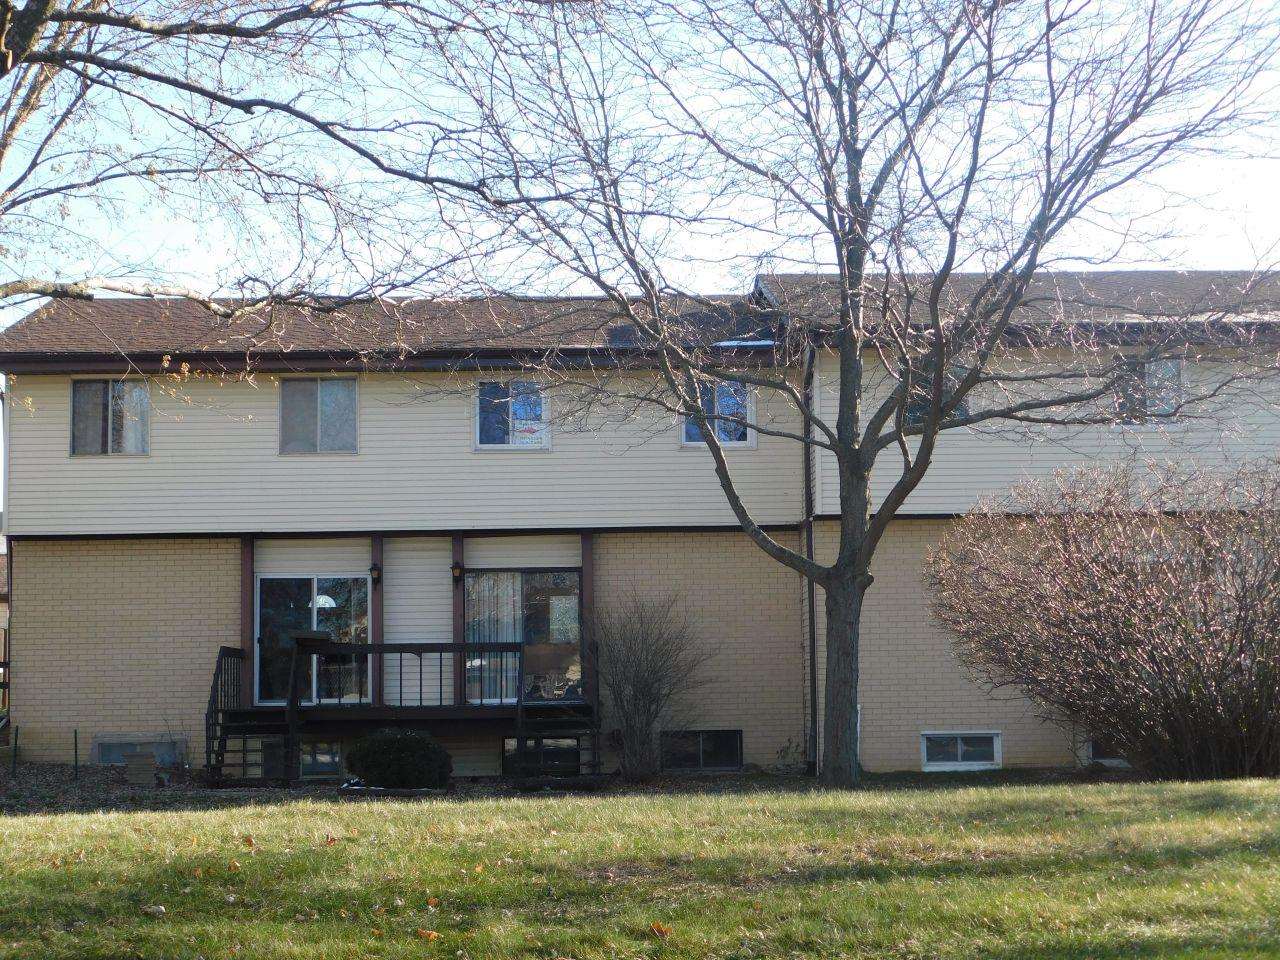 Perfect condo home with 3 nice sized bedrooms, 1 1/2 bathrooms, good sized kitchen with open concept to living room, rec room, great porch and more at an affordable price! This is a great deal for anyone who wants to be in the Germantown school district and be walking distance to shopping, restaurants and so much more. One year home warranty included! Bonus!